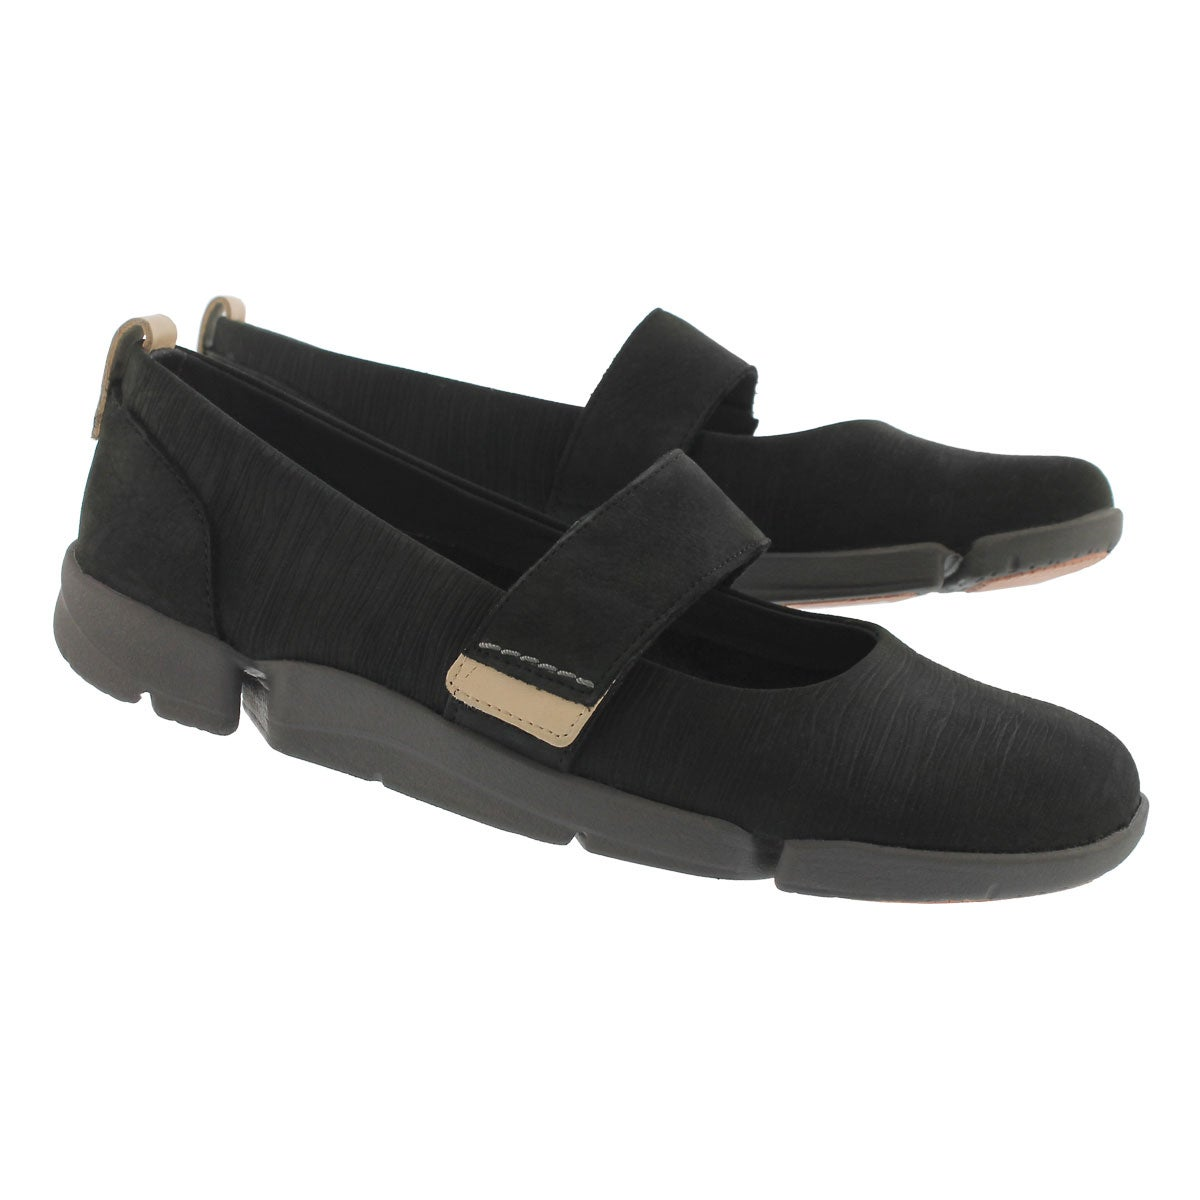 Lds Tri Carrie black casual mary jane